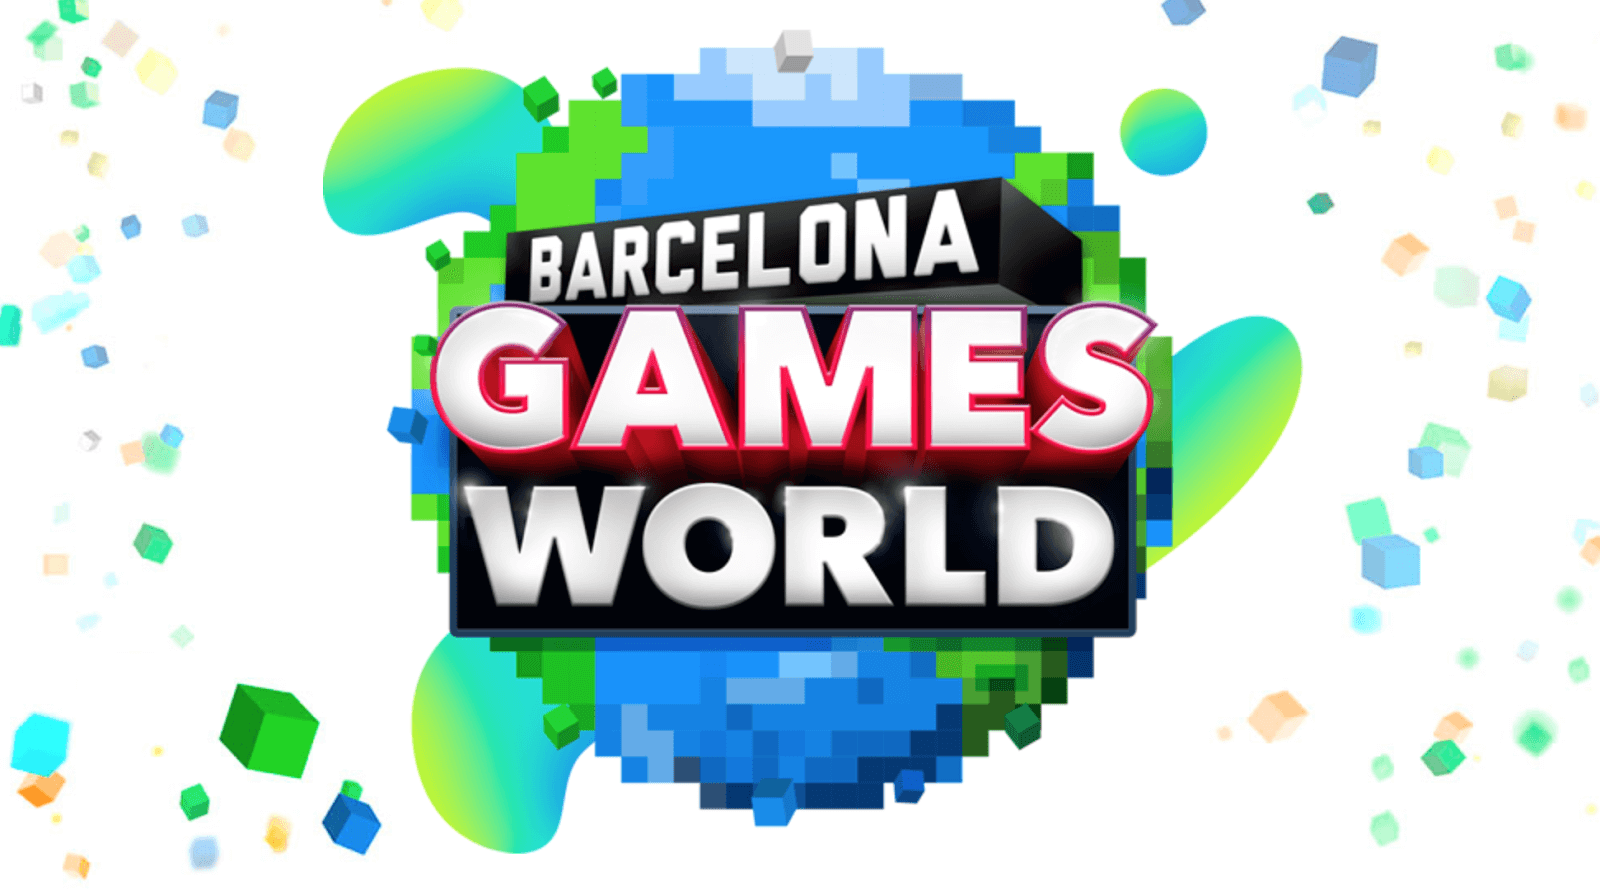 See you at Barcelona Games World